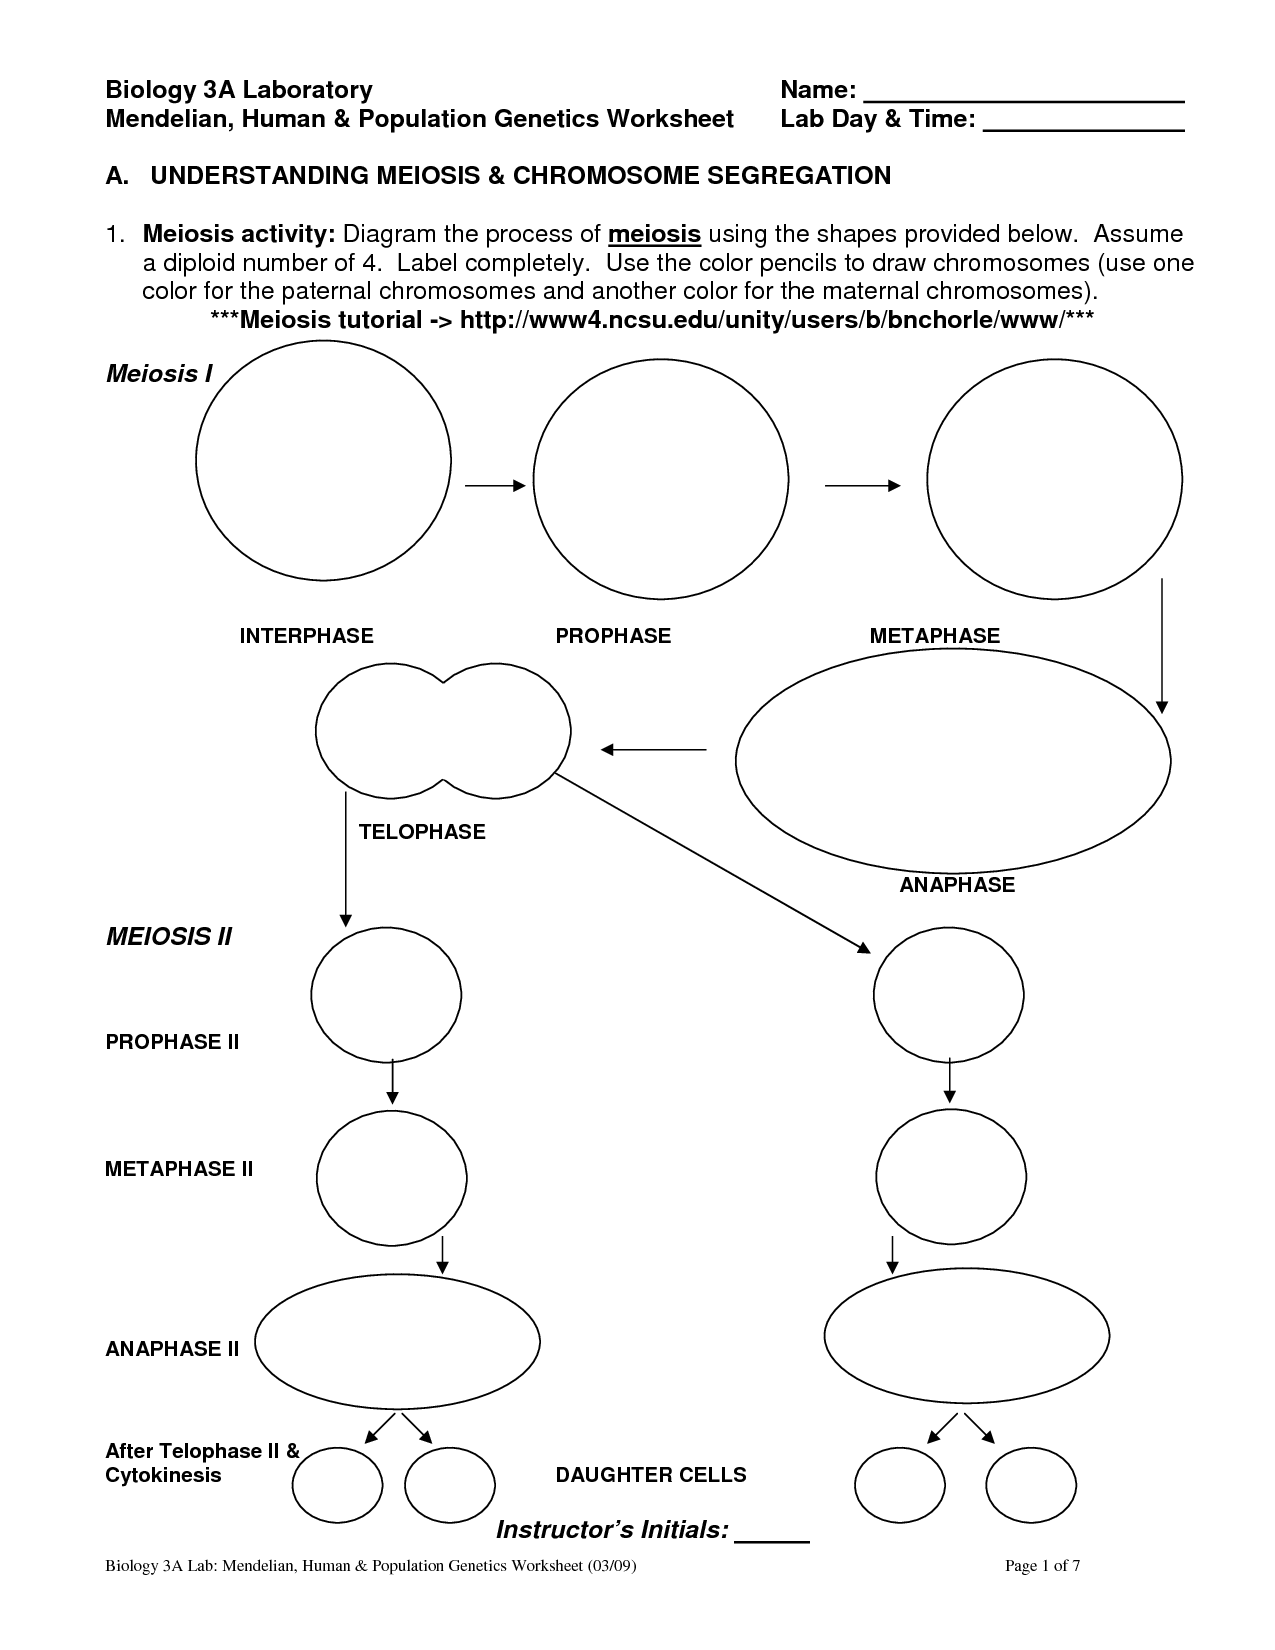 meiosis stages worksheet - Bing images | Mitosis vs meiosis ...